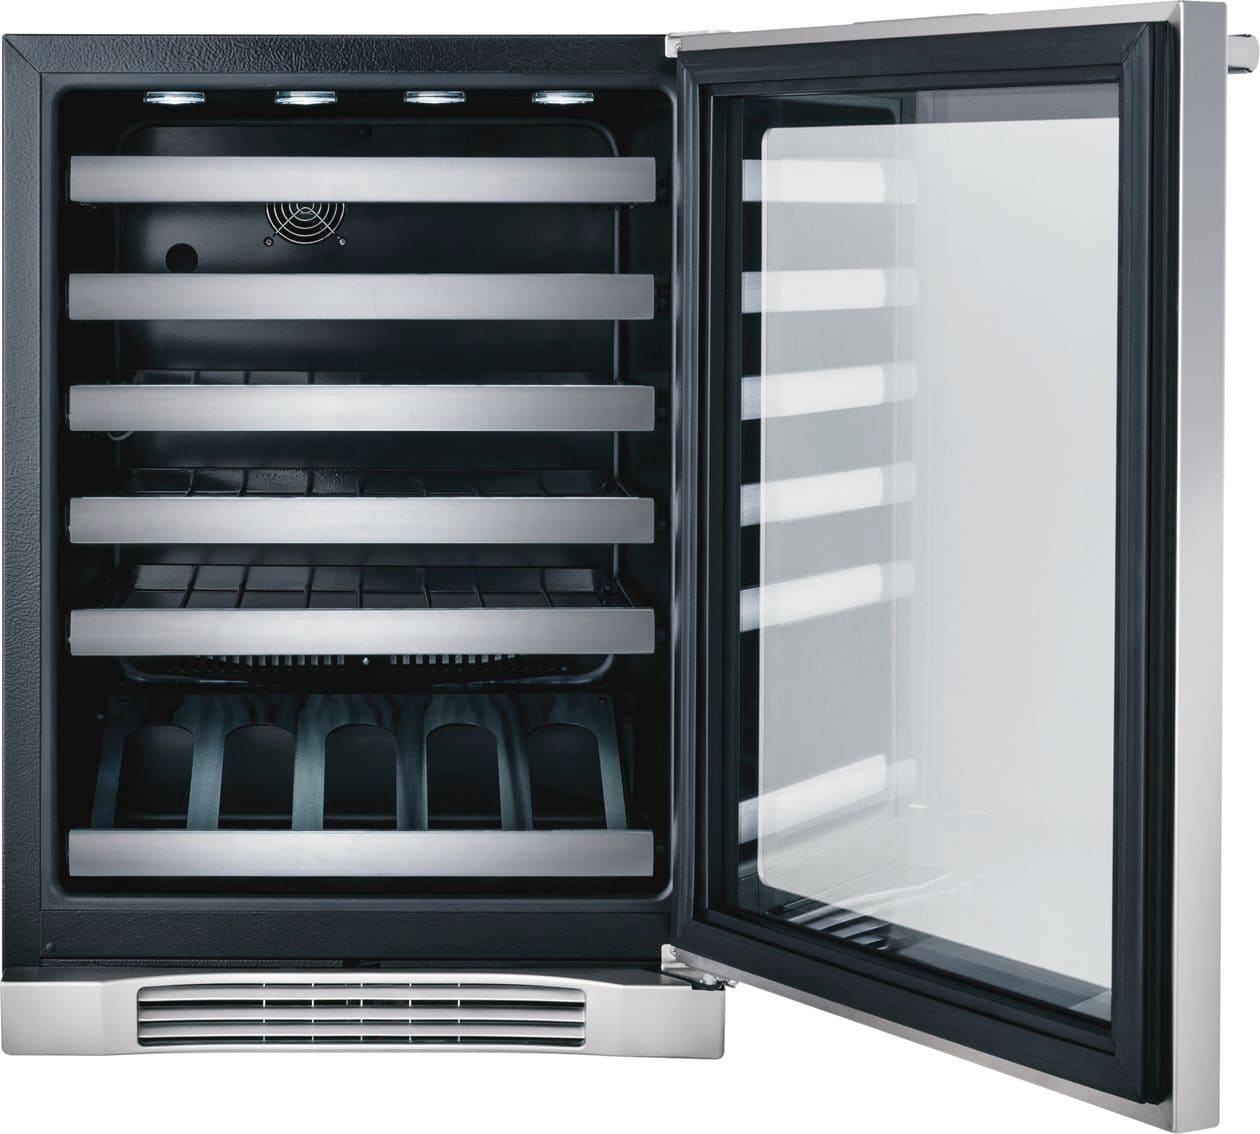 "Model: EI24WC10QS | Electrolux 24"" Under-Counter Wine Cooler with Right-Door Swing"